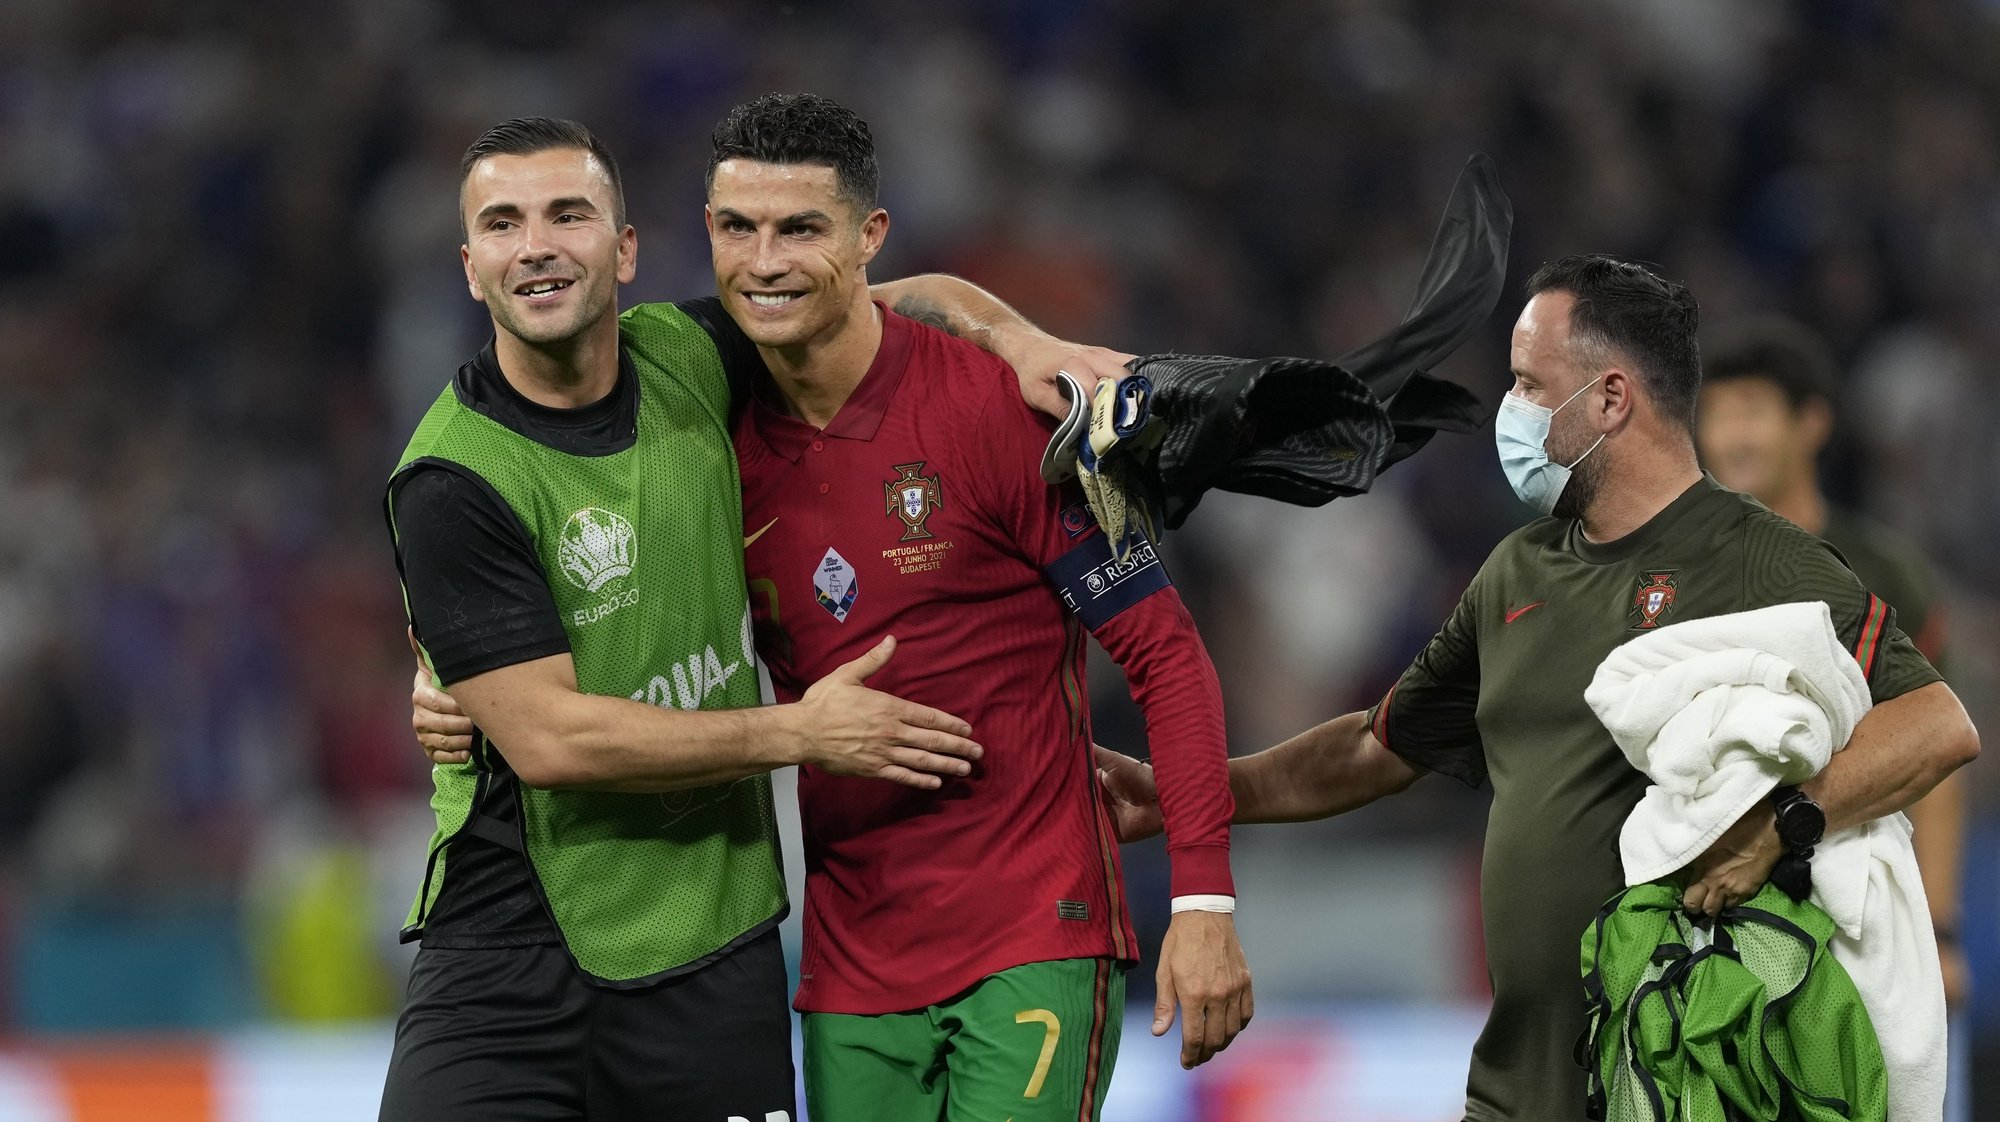 Portugal players Cristiano Ronaldo and Anthony Lopes celebrate after the UEFA EURO 2020 group F preliminary round soccer match between Portugal and France in Budapest, Hungary, 23 June 2021. HUGO DELGADO/LUSA